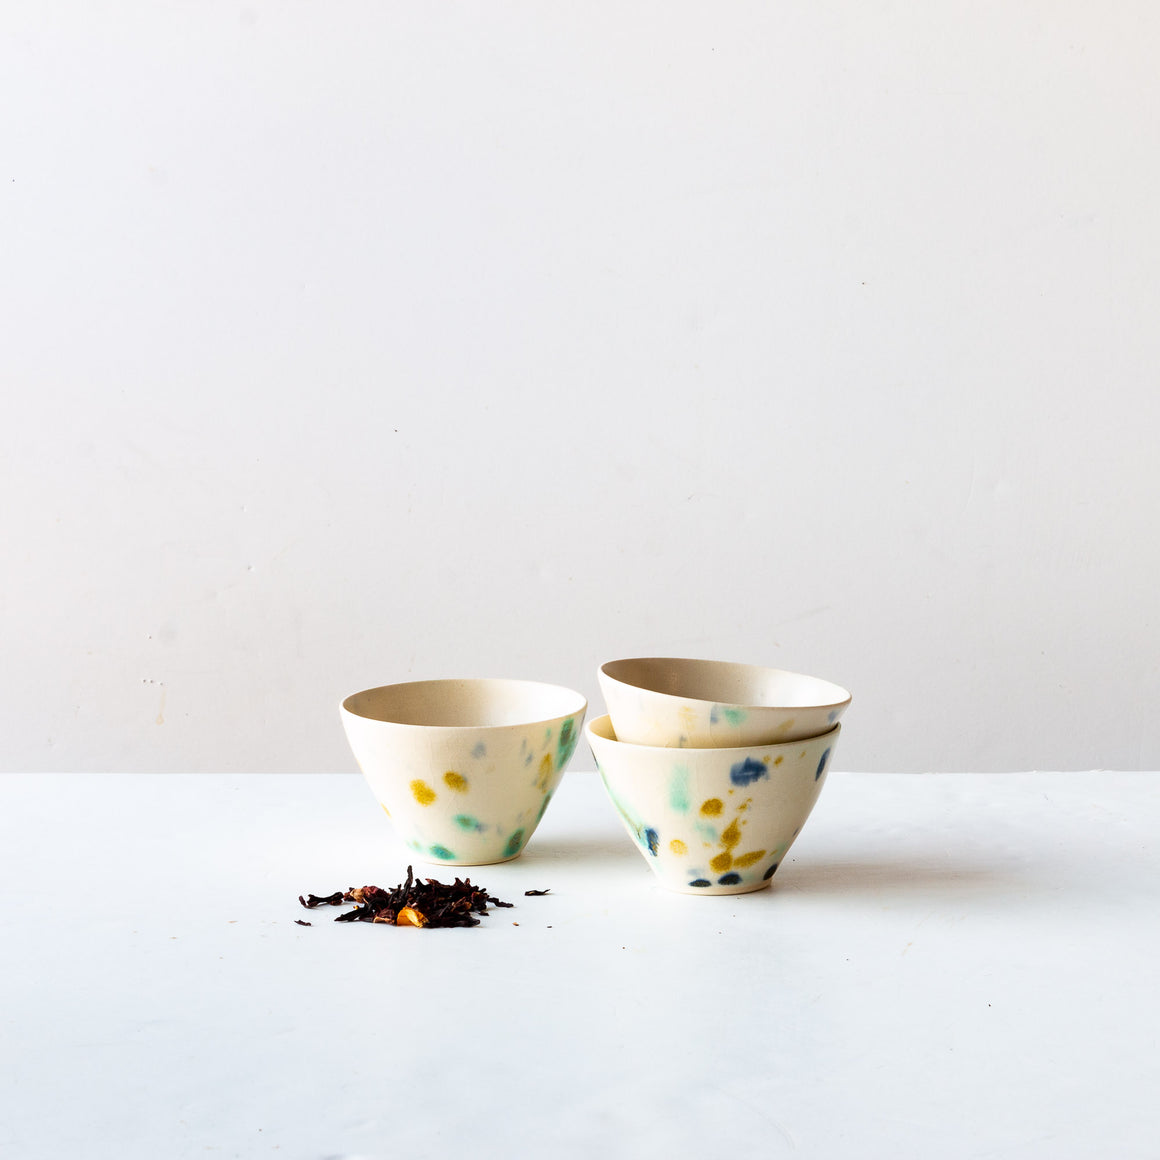 Hanabira - Handmade Small Ceramic Teacup - Sold by Chic & Basta